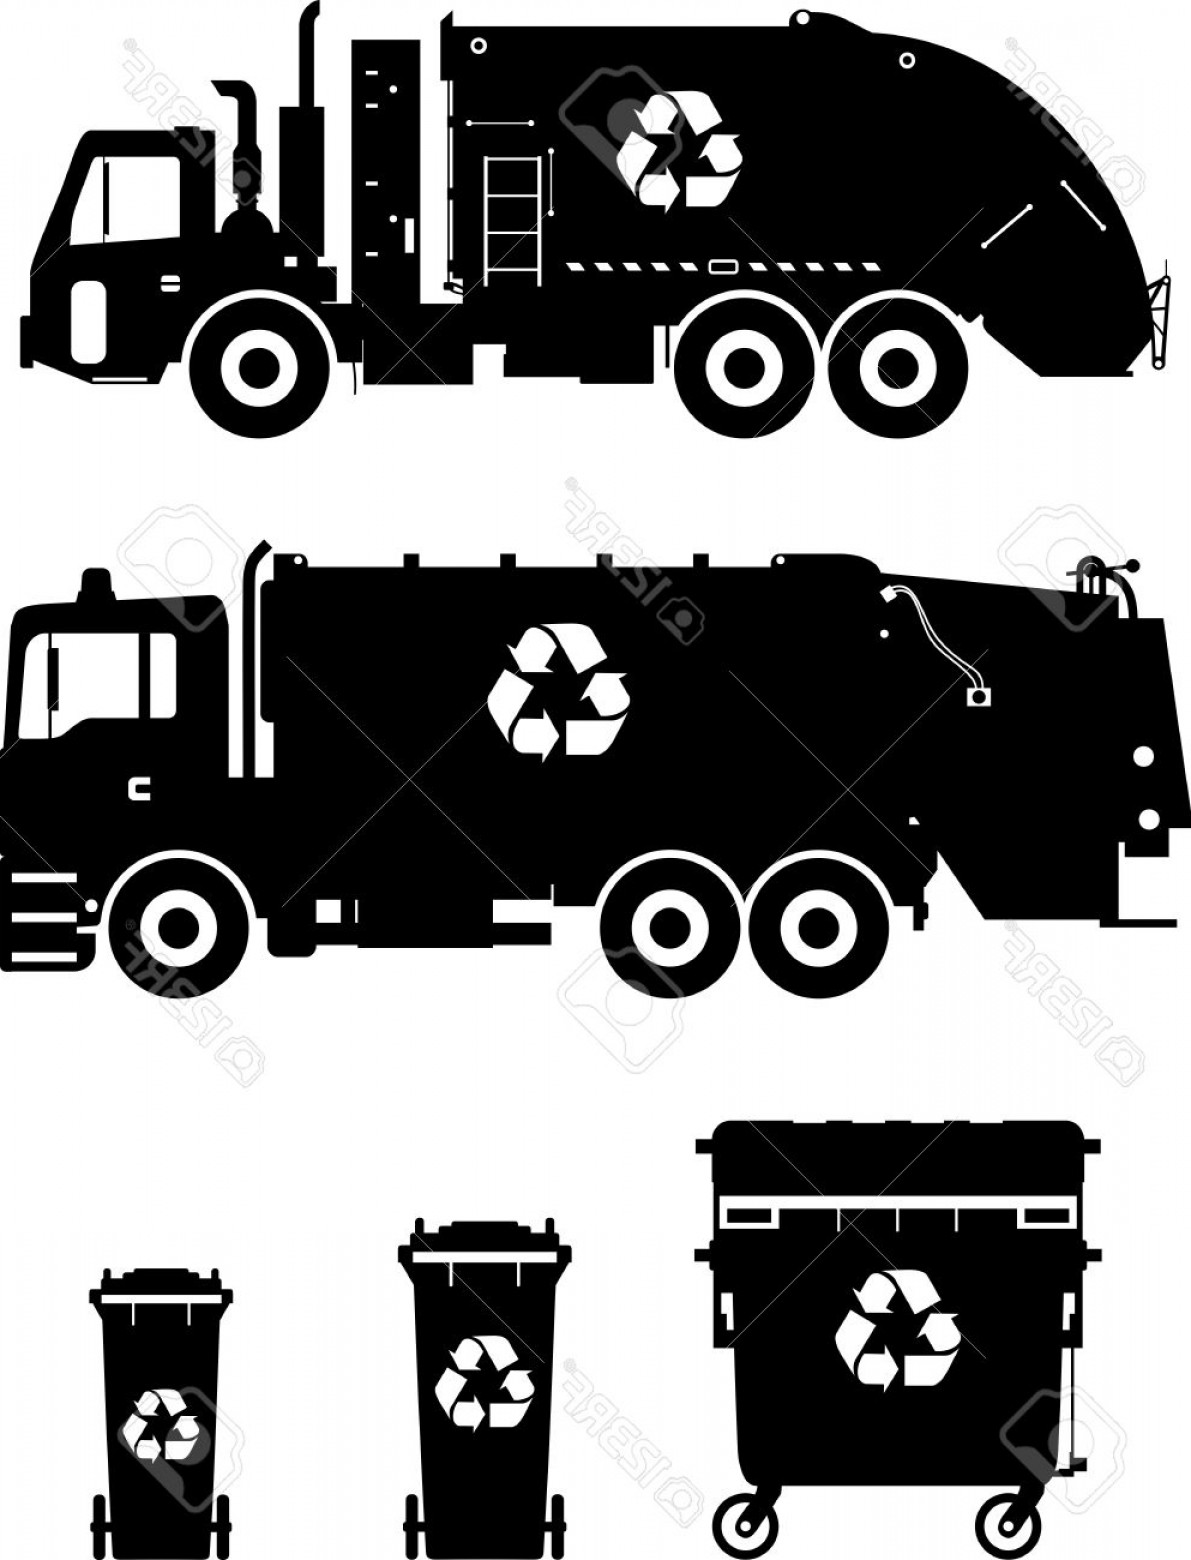 Dump Truck Vector Black And White: Photostock Vector Silhouette Illustration Of Garbage Trucks And Dumpsters Isolated On White Background